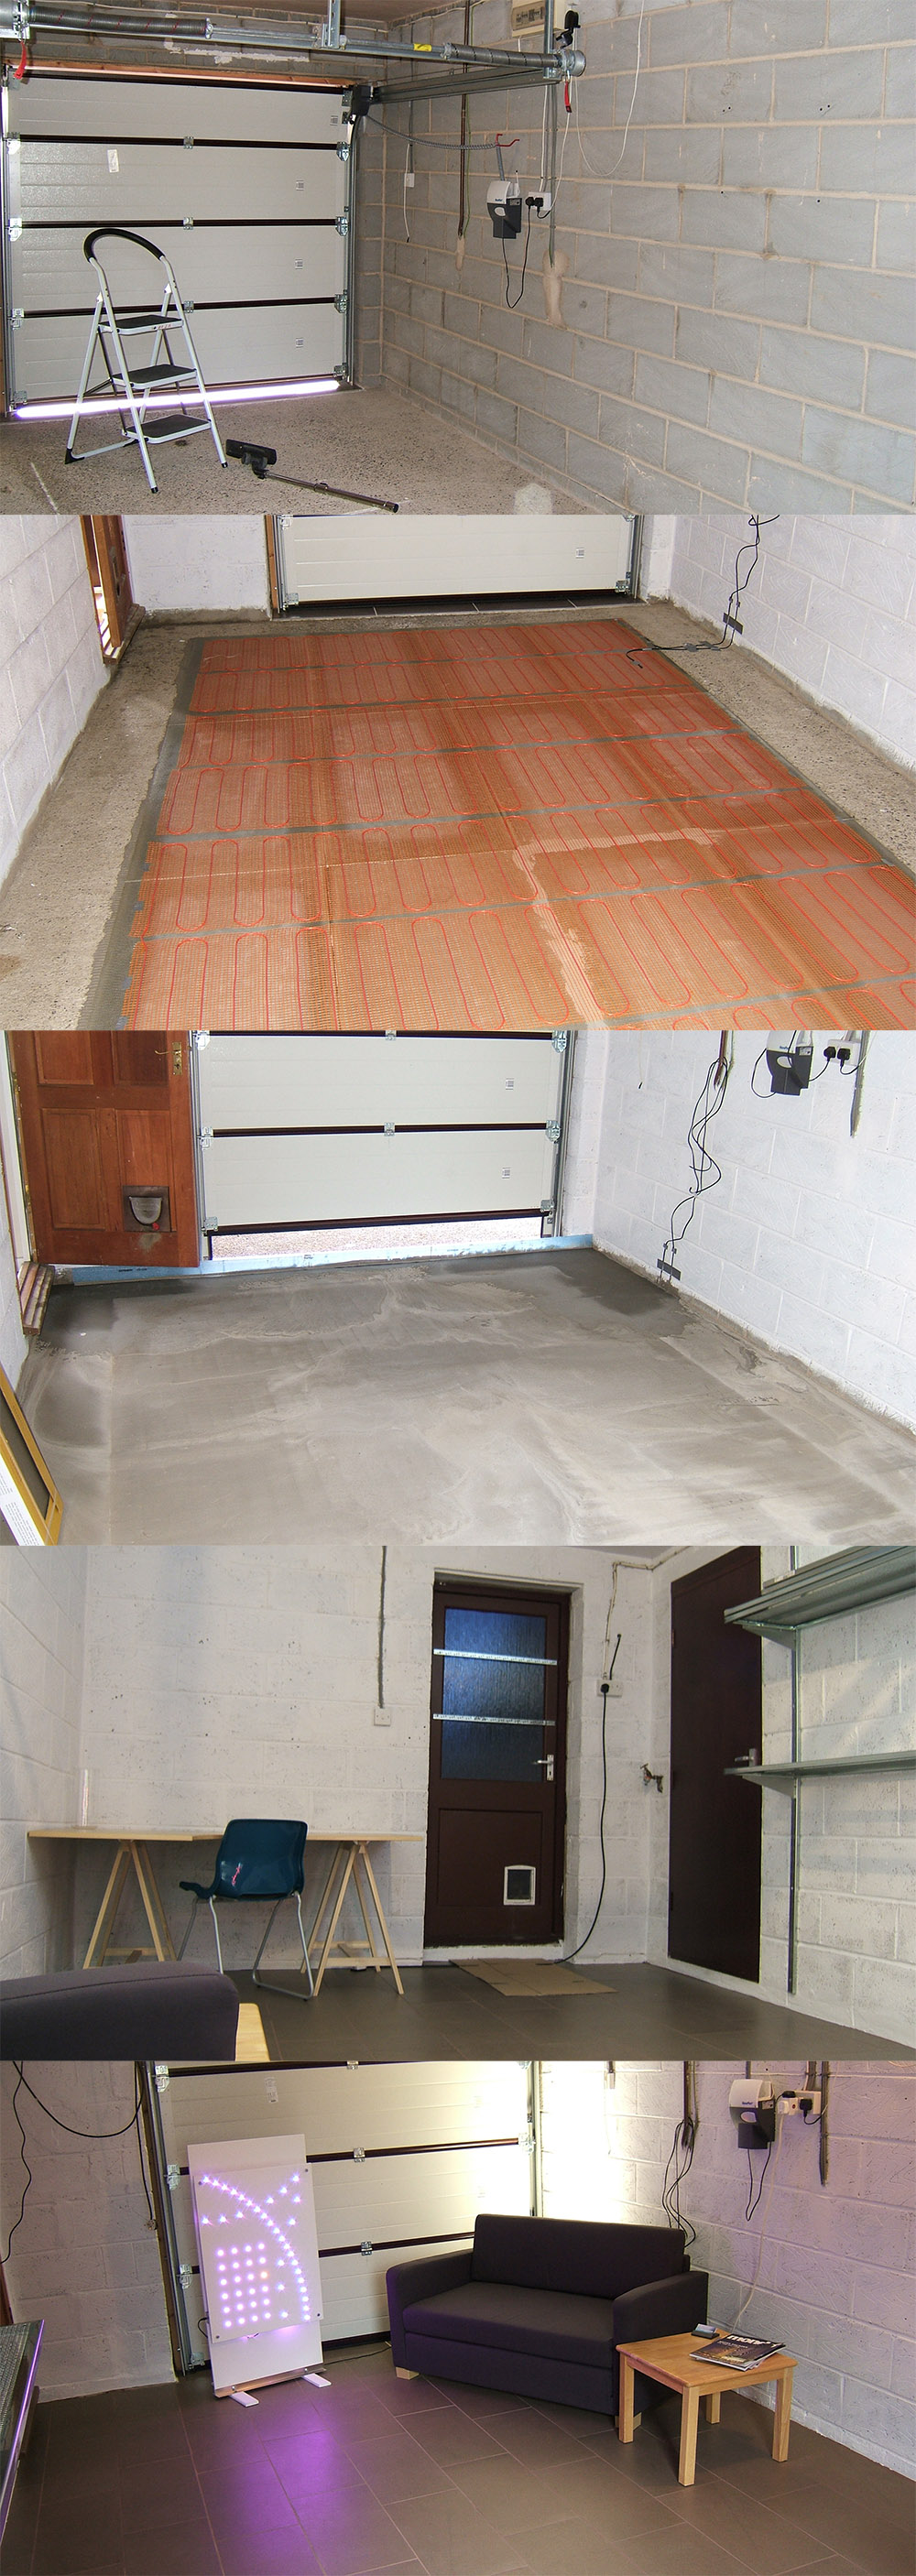 Garage with under floor heating